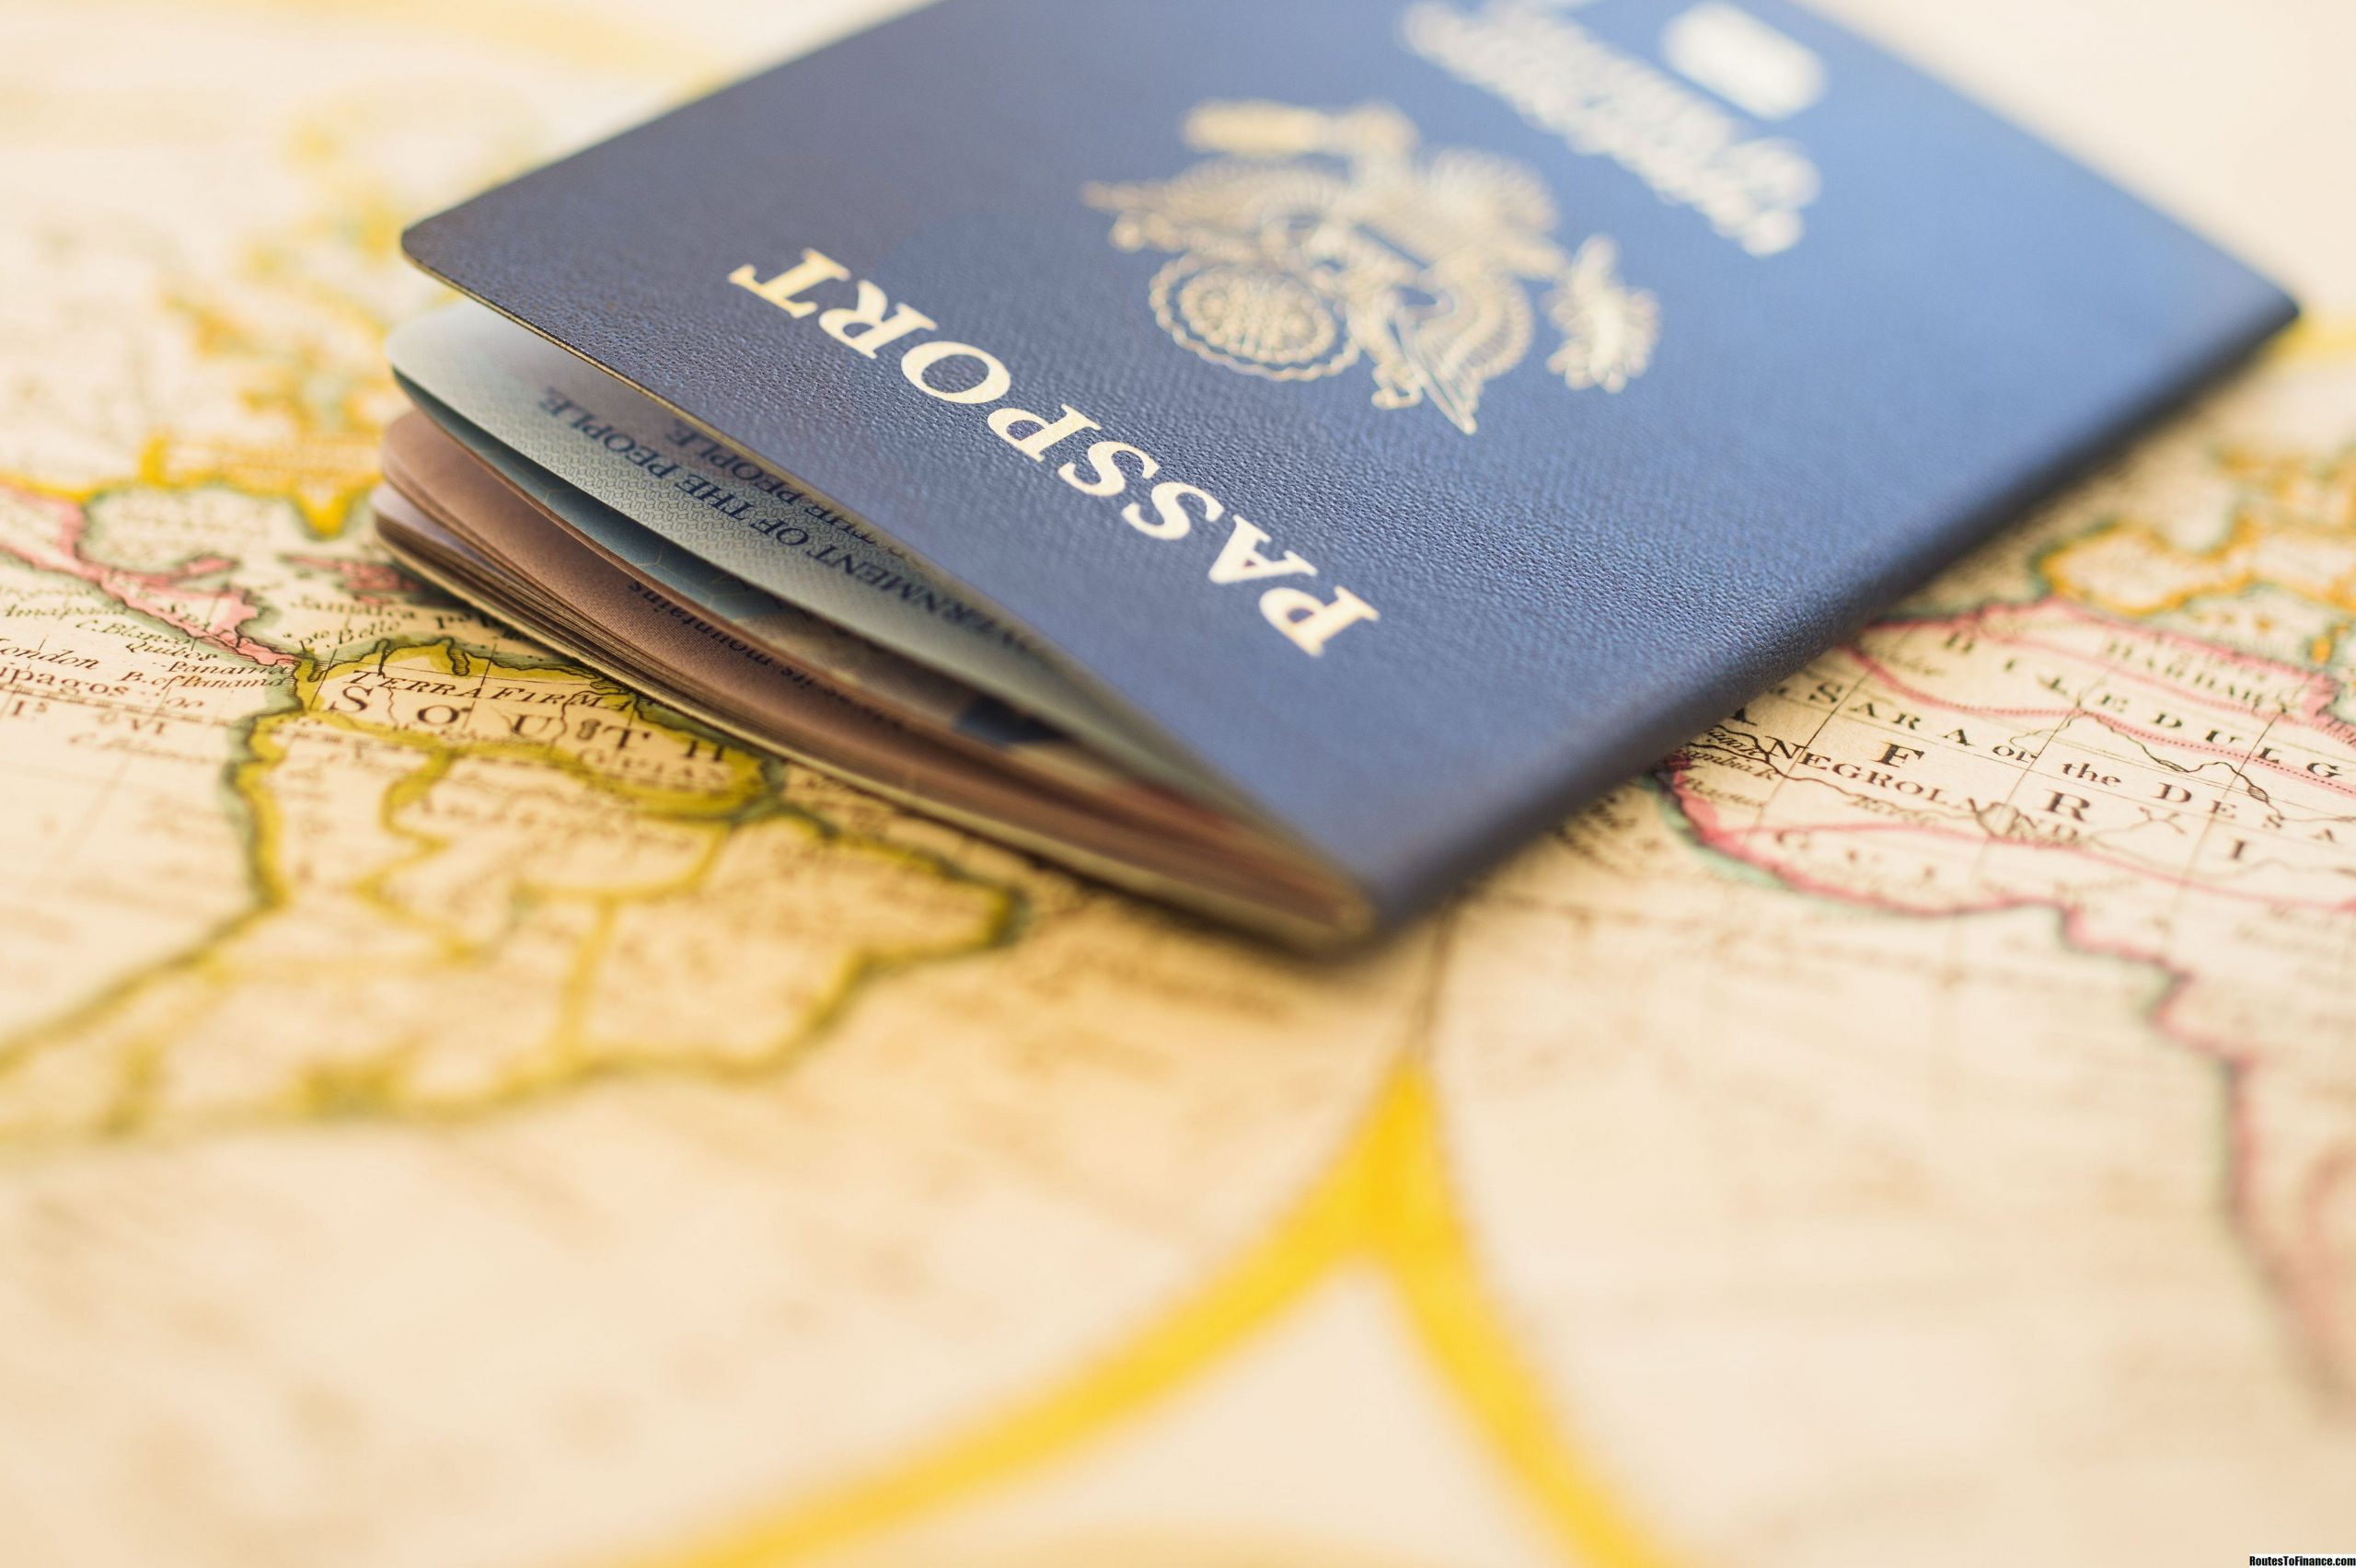 COVID-19 impact: Many UAE expats are buying a second passport; applications rise by 30%